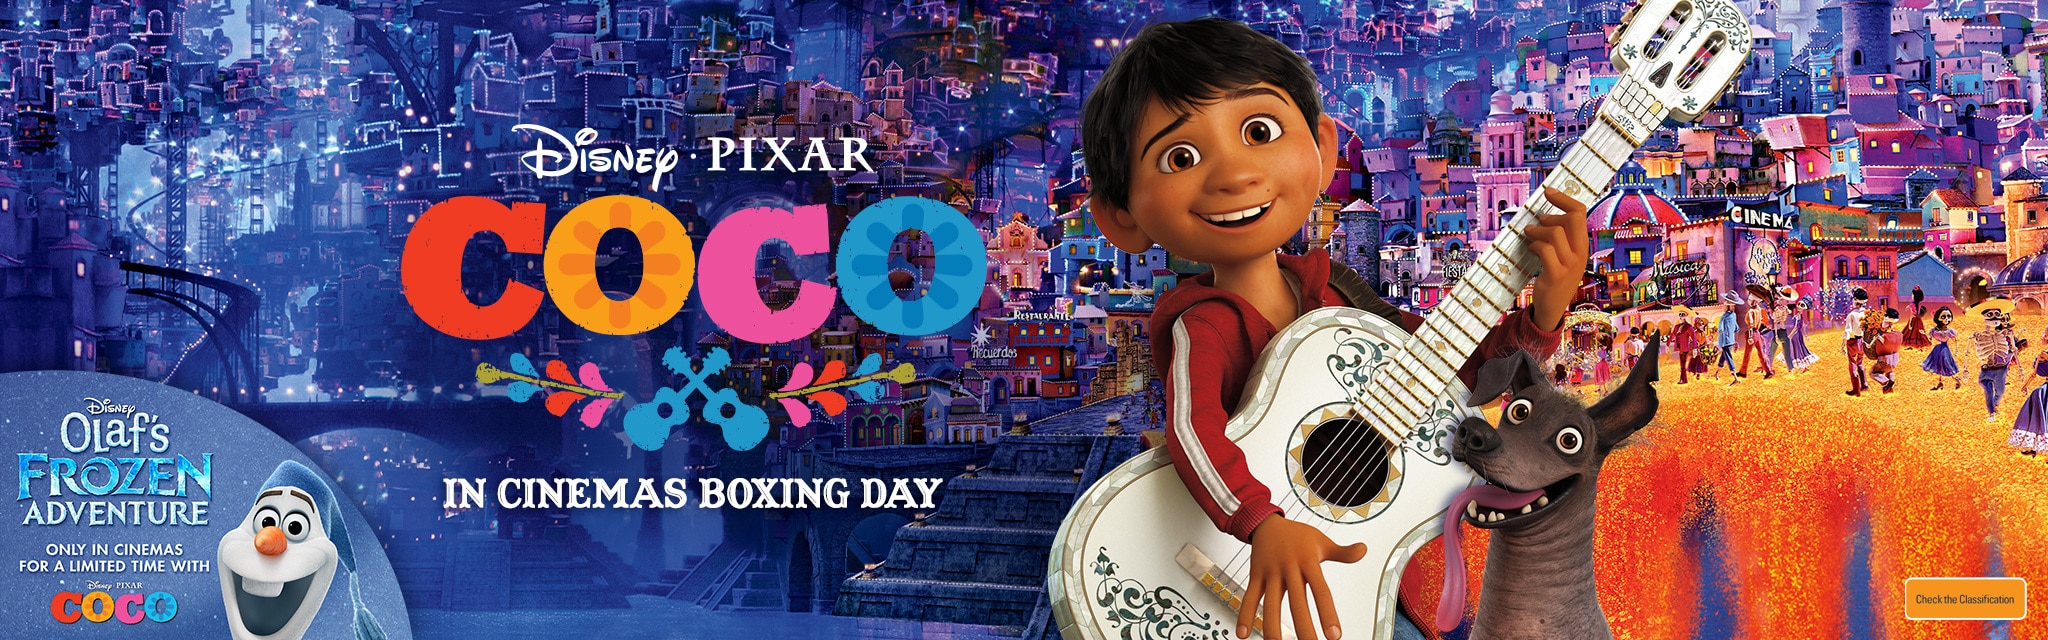 AU Movies Coco Universal Hero with Takeover